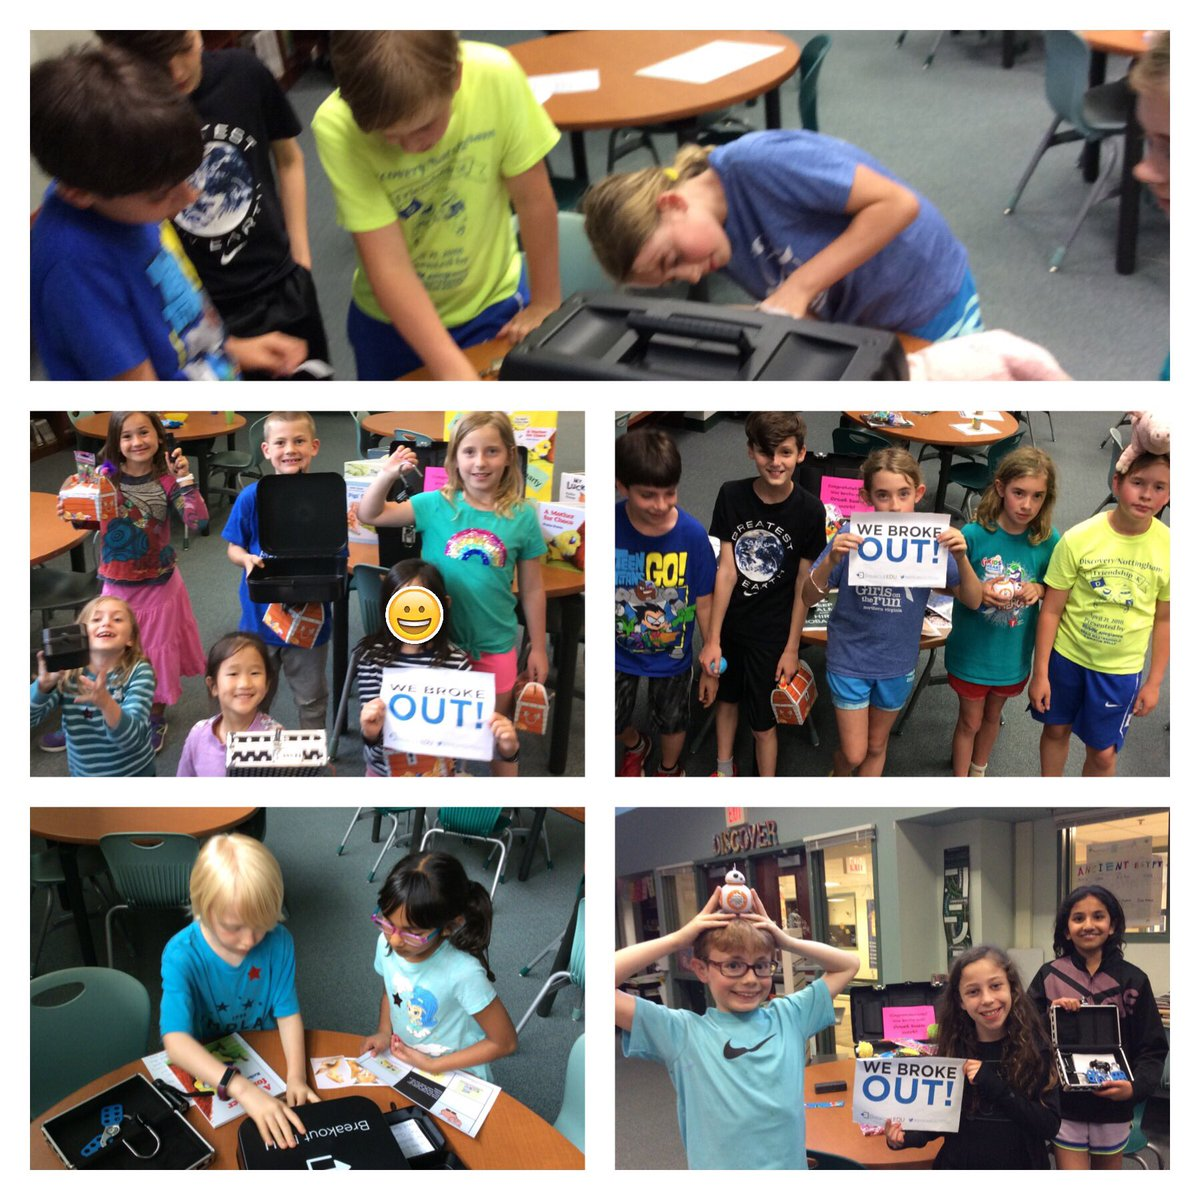 We had SO much fun with our auction winners doing <a target='_blank' href='http://twitter.com/breakoutEDU'>@breakoutEDU</a> in the library. What impressive detectives we have. <a target='_blank' href='http://search.twitter.com/search?q=KnightsRock'><a target='_blank' href='https://twitter.com/hashtag/KnightsRock?src=hash'>#KnightsRock</a></a> Thank you, families, for supporting <a target='_blank' href='http://twitter.com/NottinghamPTA'>@NottinghamPTA</a>!  We appreciate you.  <a target='_blank' href='http://twitter.com/NTMKnightsAPS'>@NTMKnightsAPS</a> <a target='_blank' href='http://twitter.com/APSLibrarians'>@APSLibrarians</a> 🔍🔐 <a target='_blank' href='https://t.co/QVlRJTXJT1'>https://t.co/QVlRJTXJT1</a>